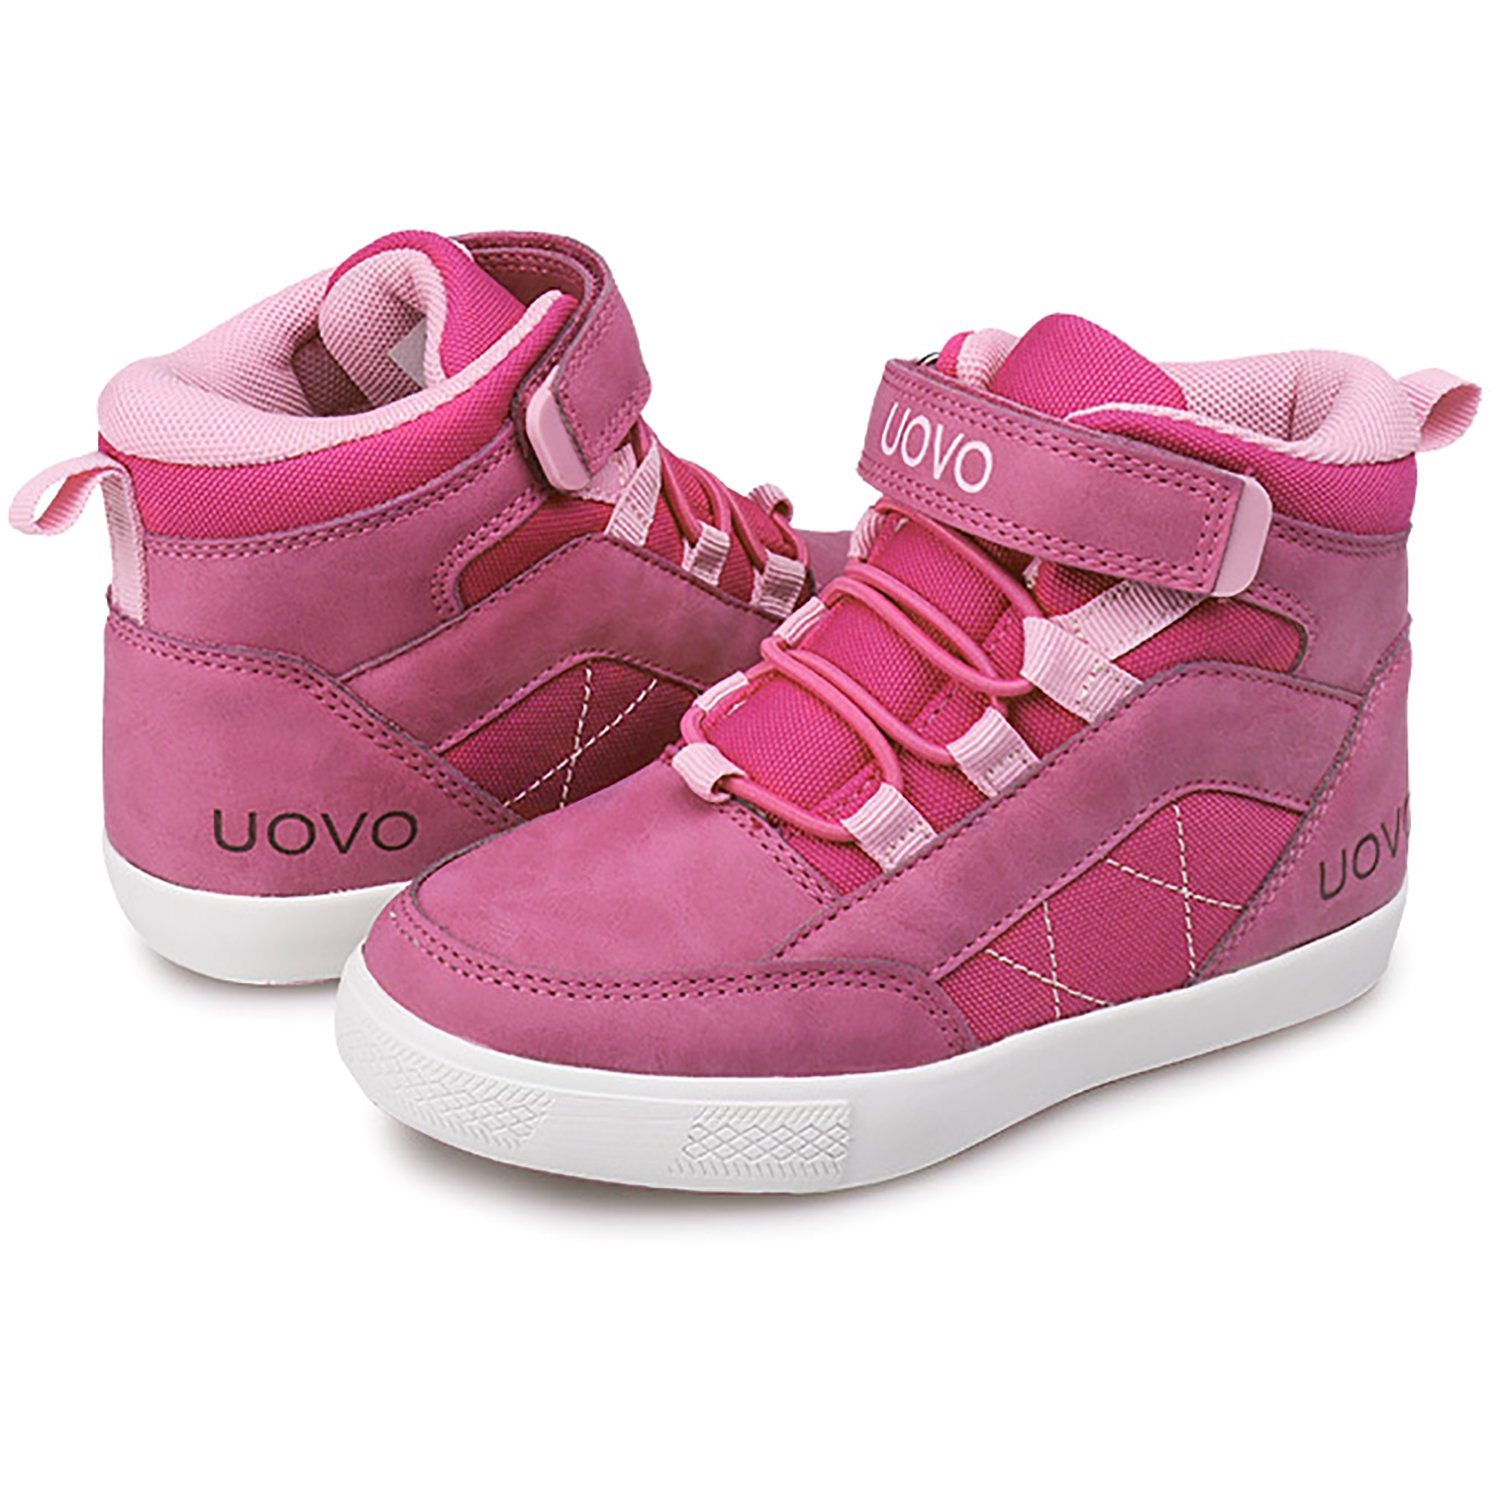 UBELLA Kids Girls Boys Waterproof Leather Strap Casual Flats Sneakers Shoes